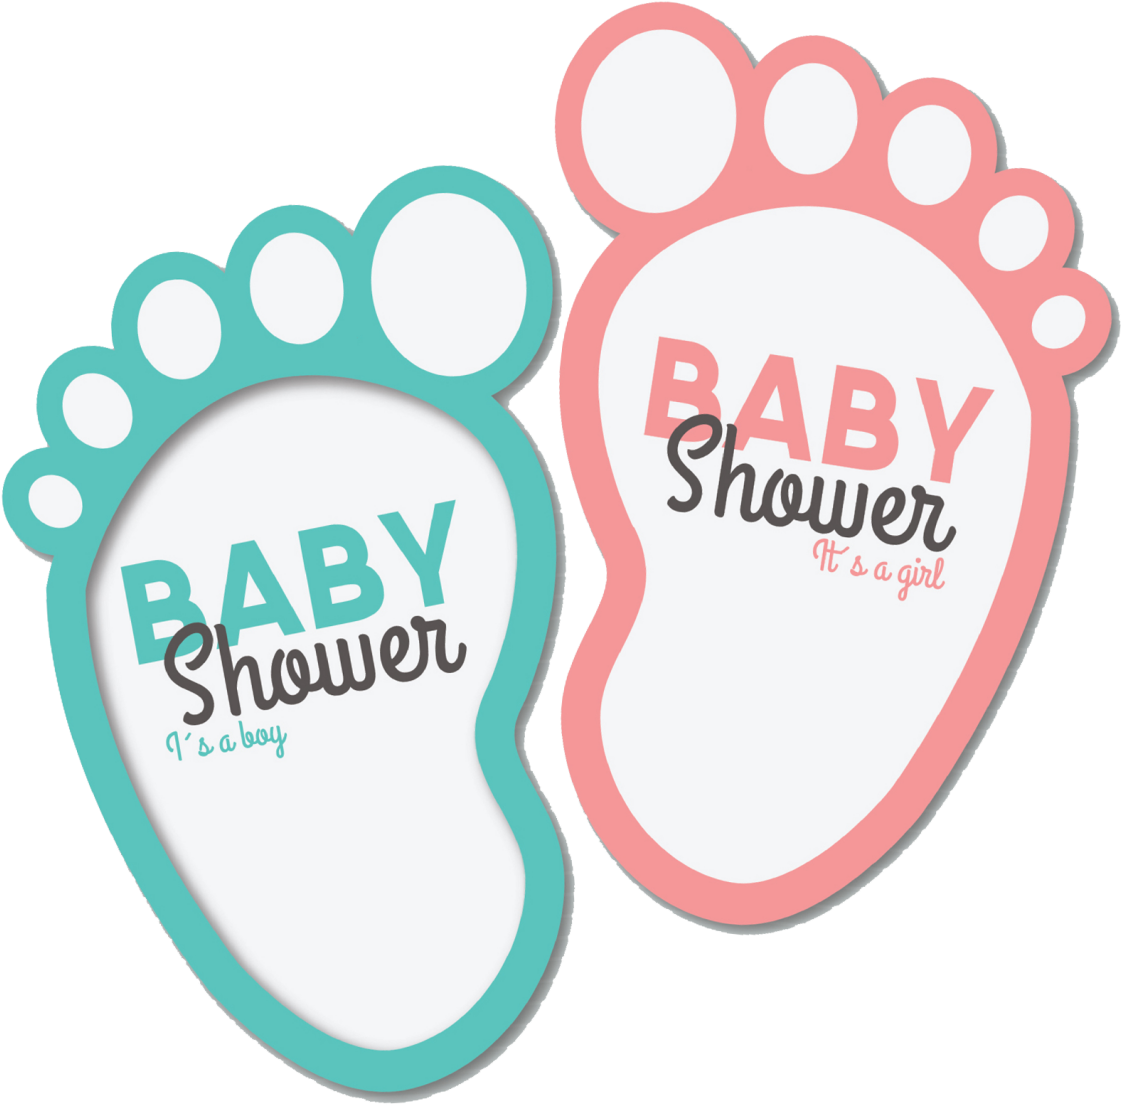 Download Baby Shower Icons Babyshower Icon Transparent Png Image With No Background Pngkey Com